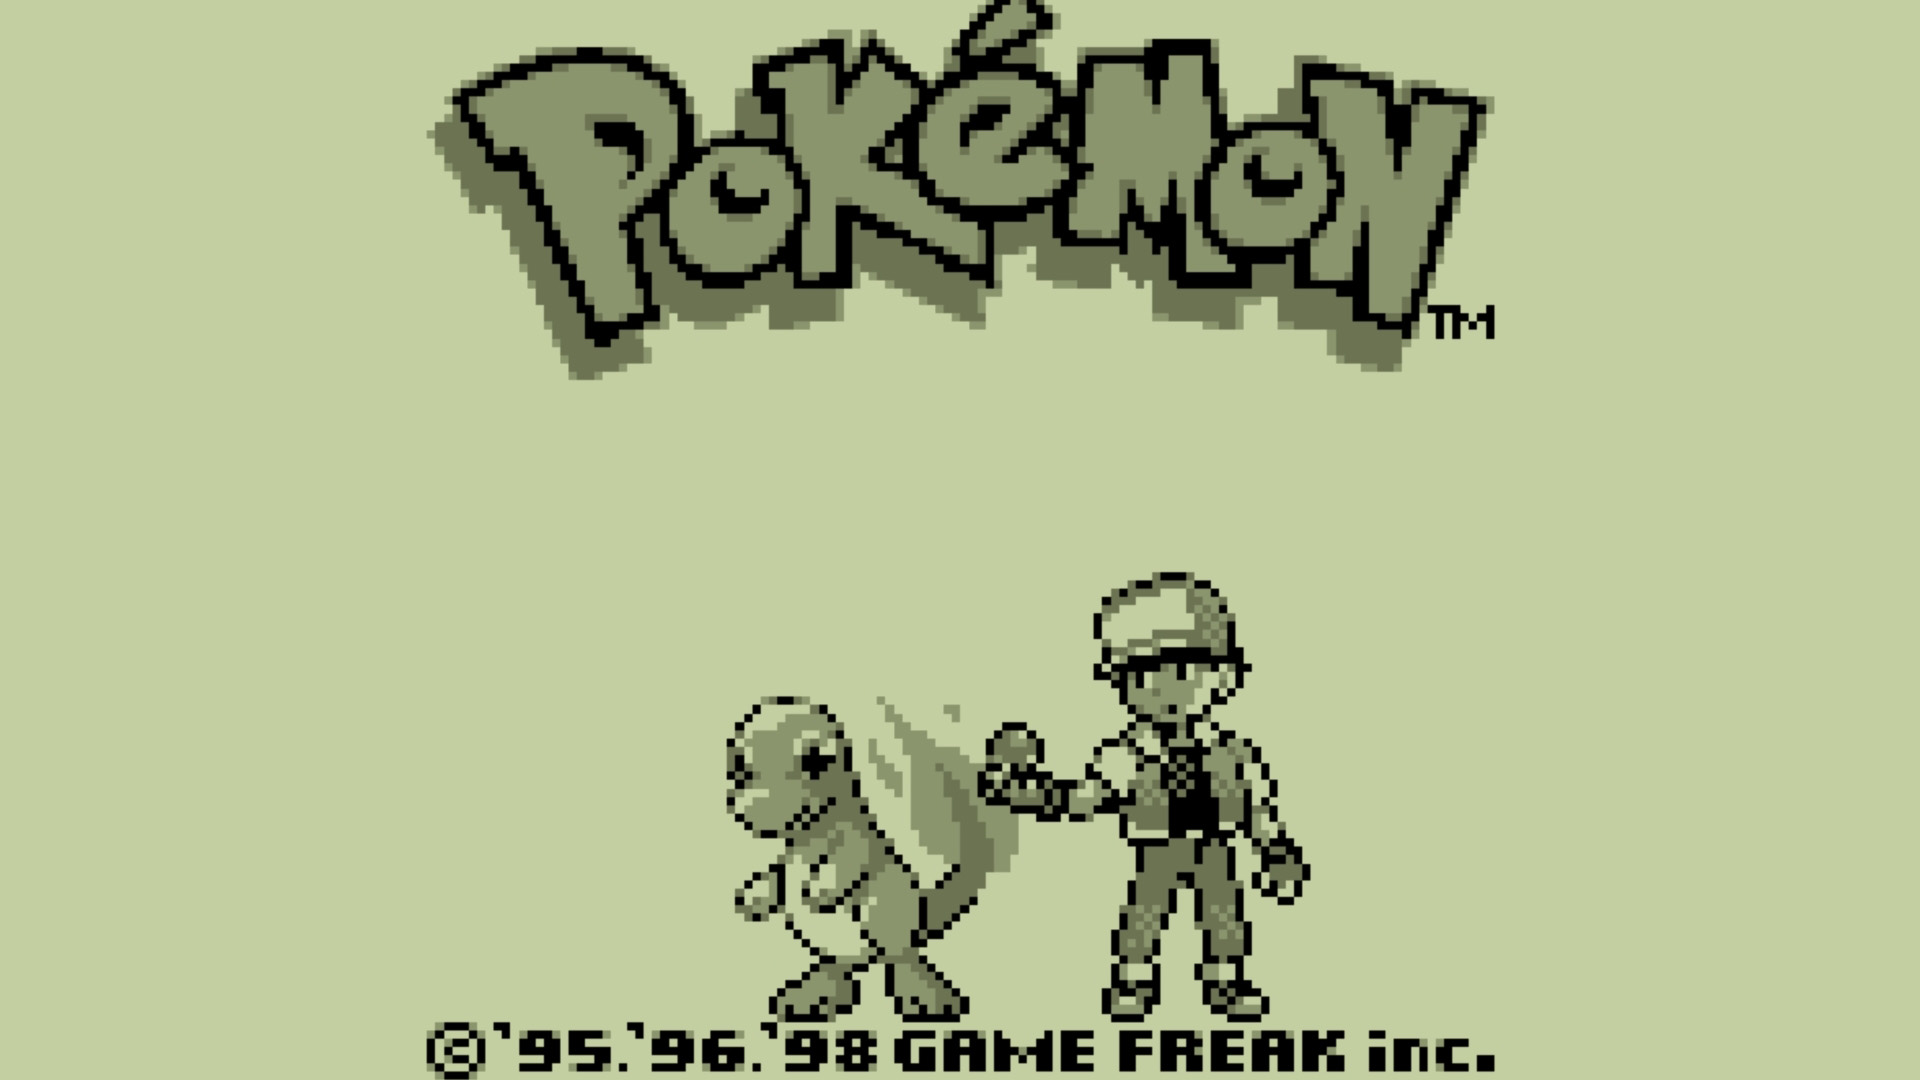 Pokemon Pixels Wallpaper 1920x1080 Pokemon Pixels Charmander Retro 1920x1080